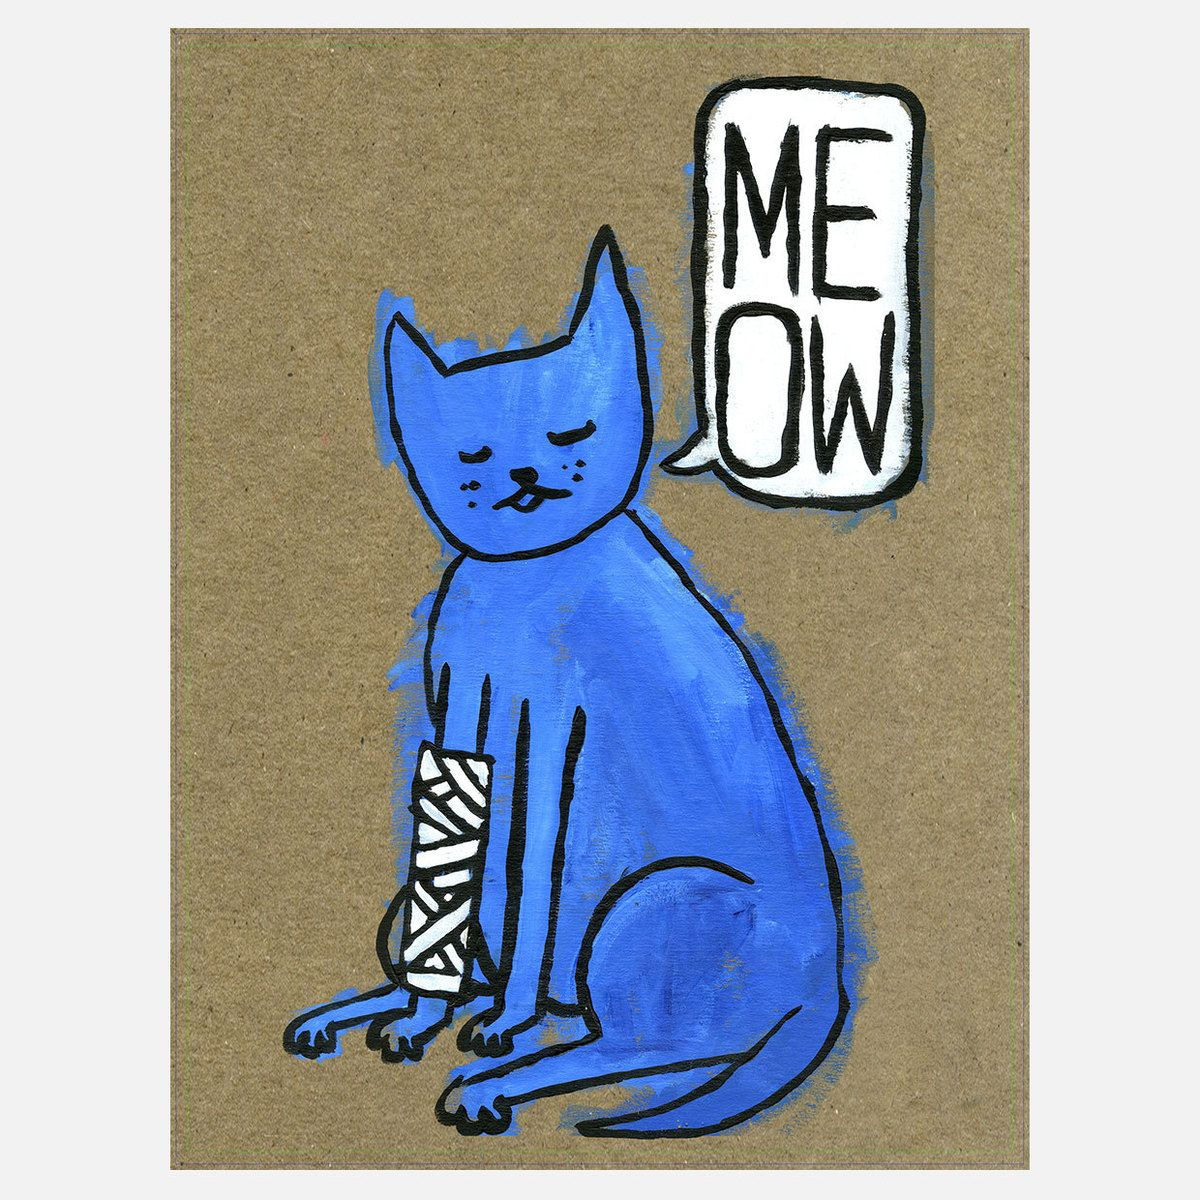 {Blue Cat} Michael Anderson - double meaning 'MEOW' ME + OW! so me.